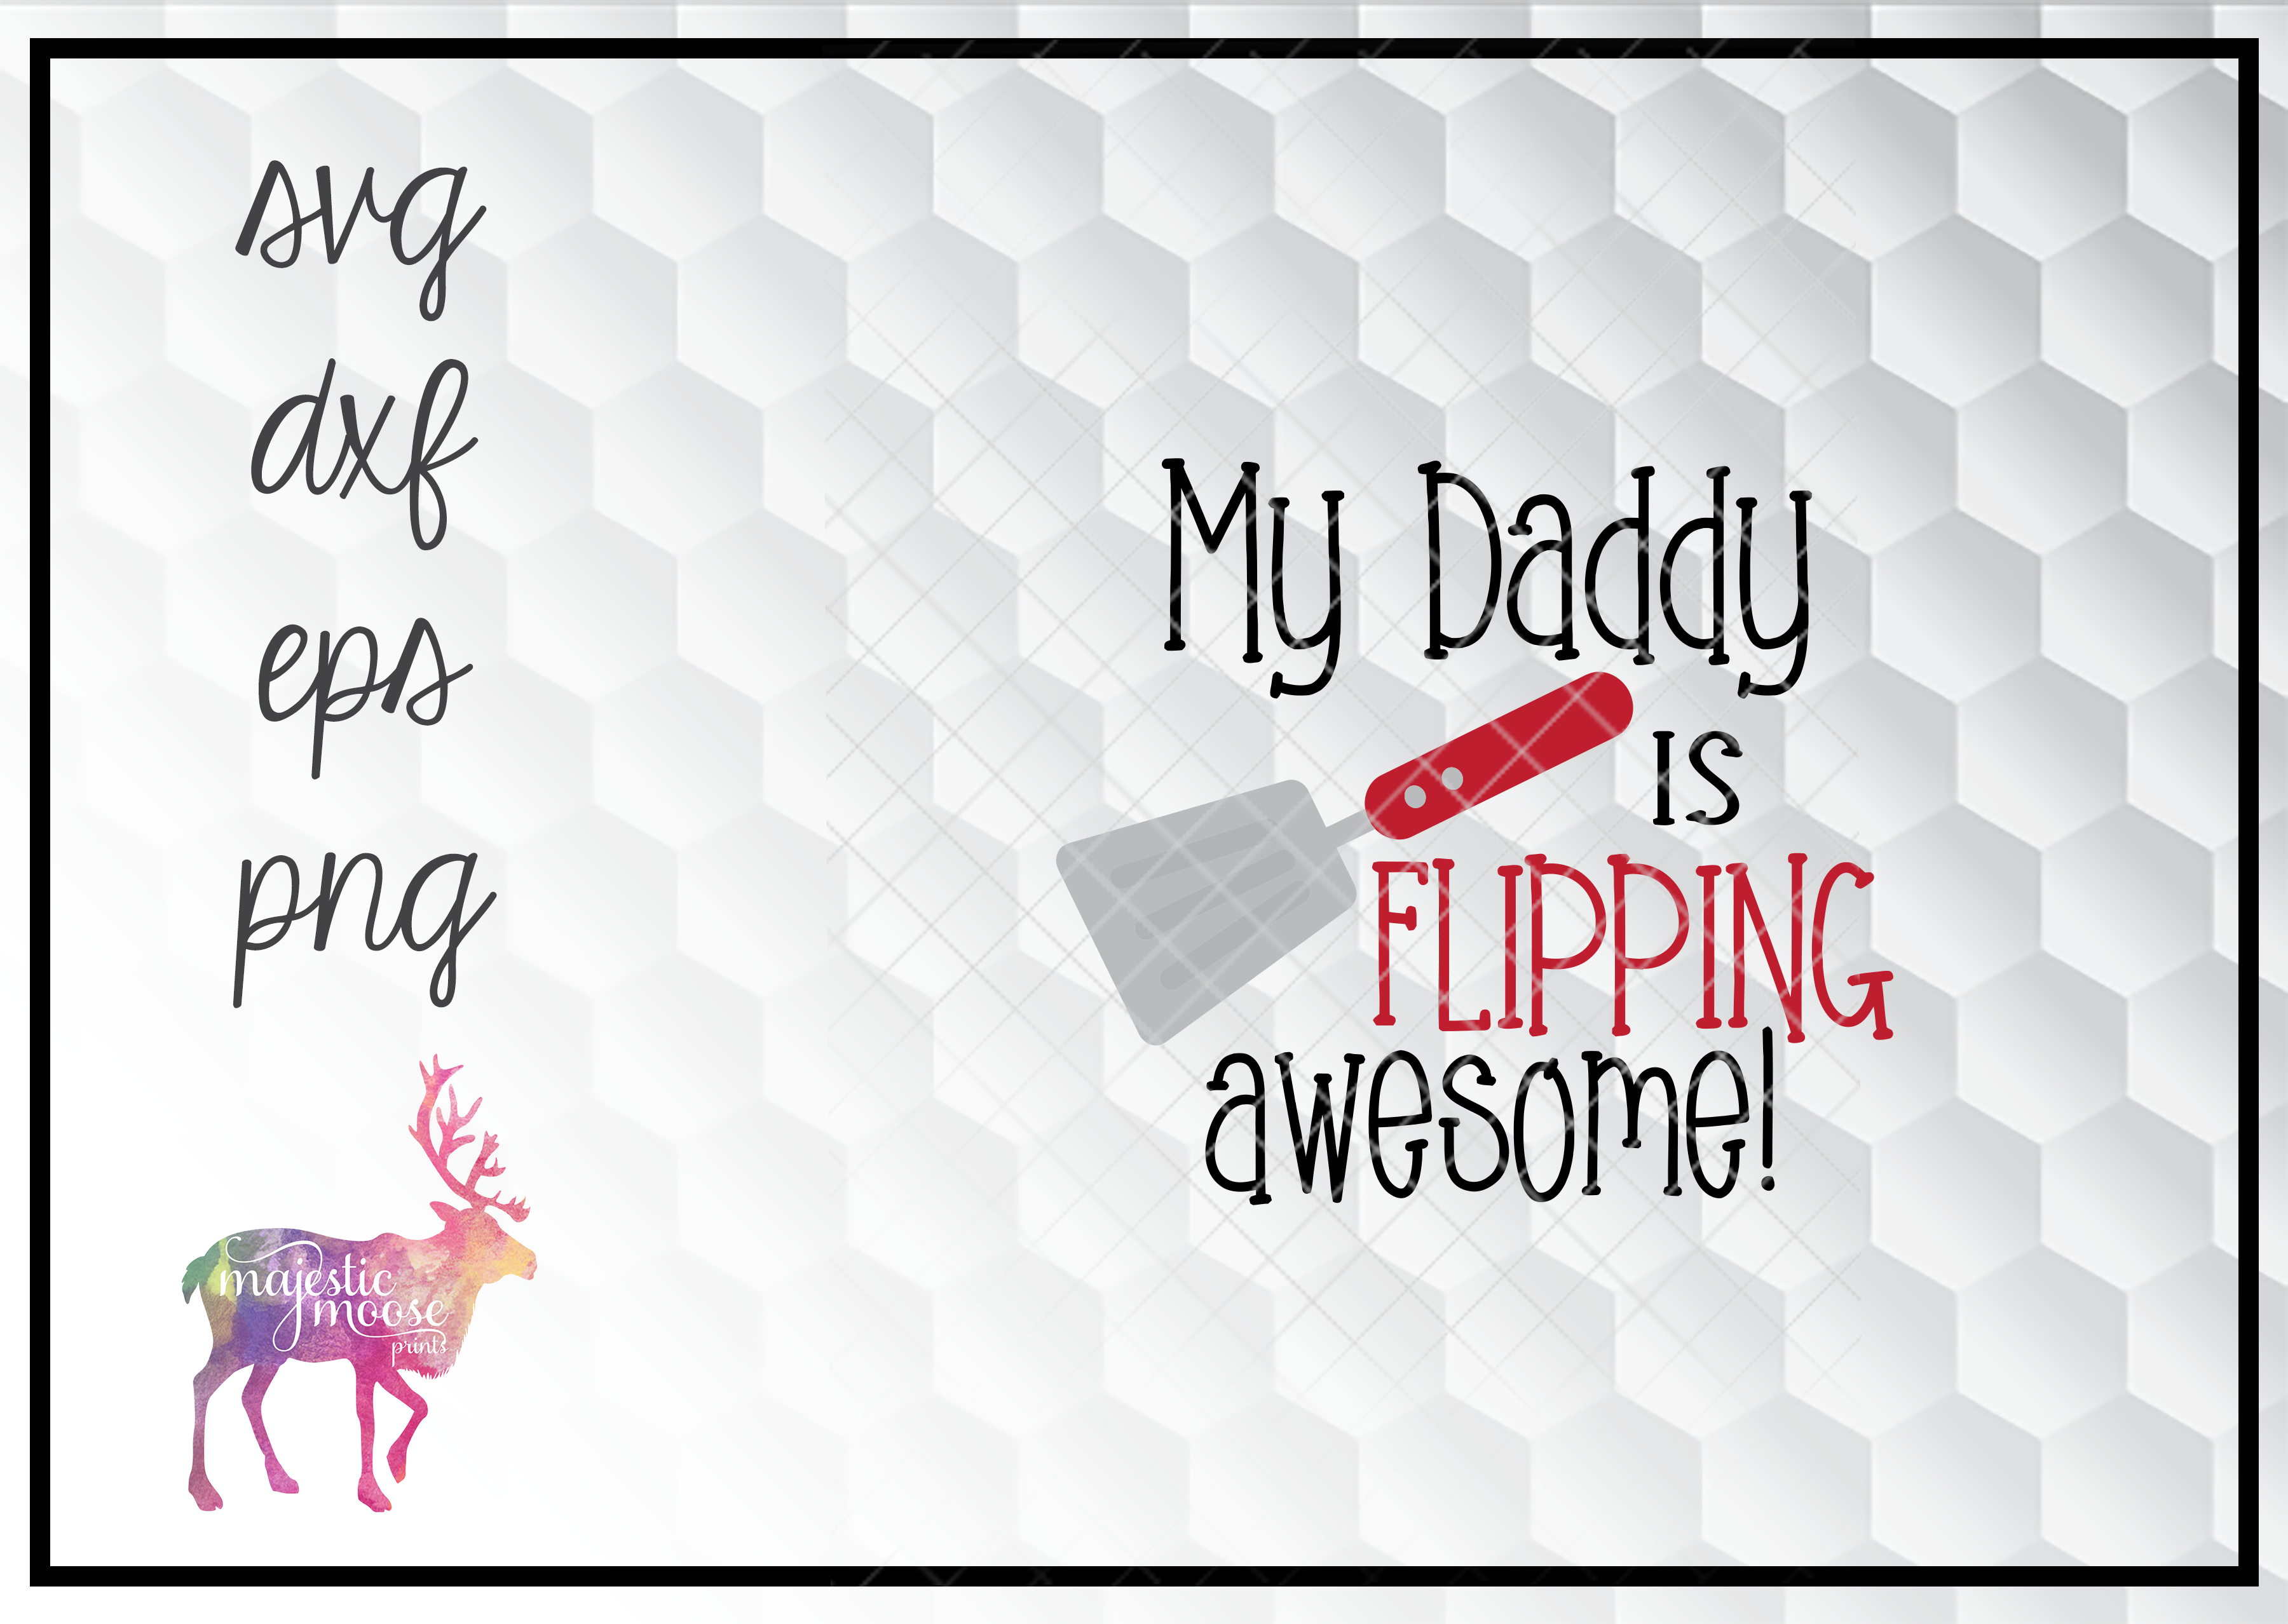 Download Free My Daddy Is Flipping Awesome Svg Graphic By Majesticmooseprints for Cricut Explore, Silhouette and other cutting machines.